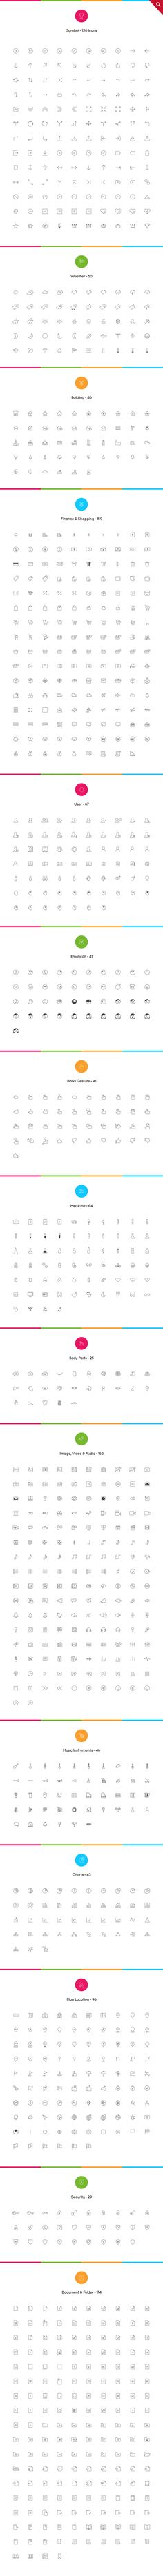 2061 nanoline icons - 70% off by vuuuds on @creativemarket